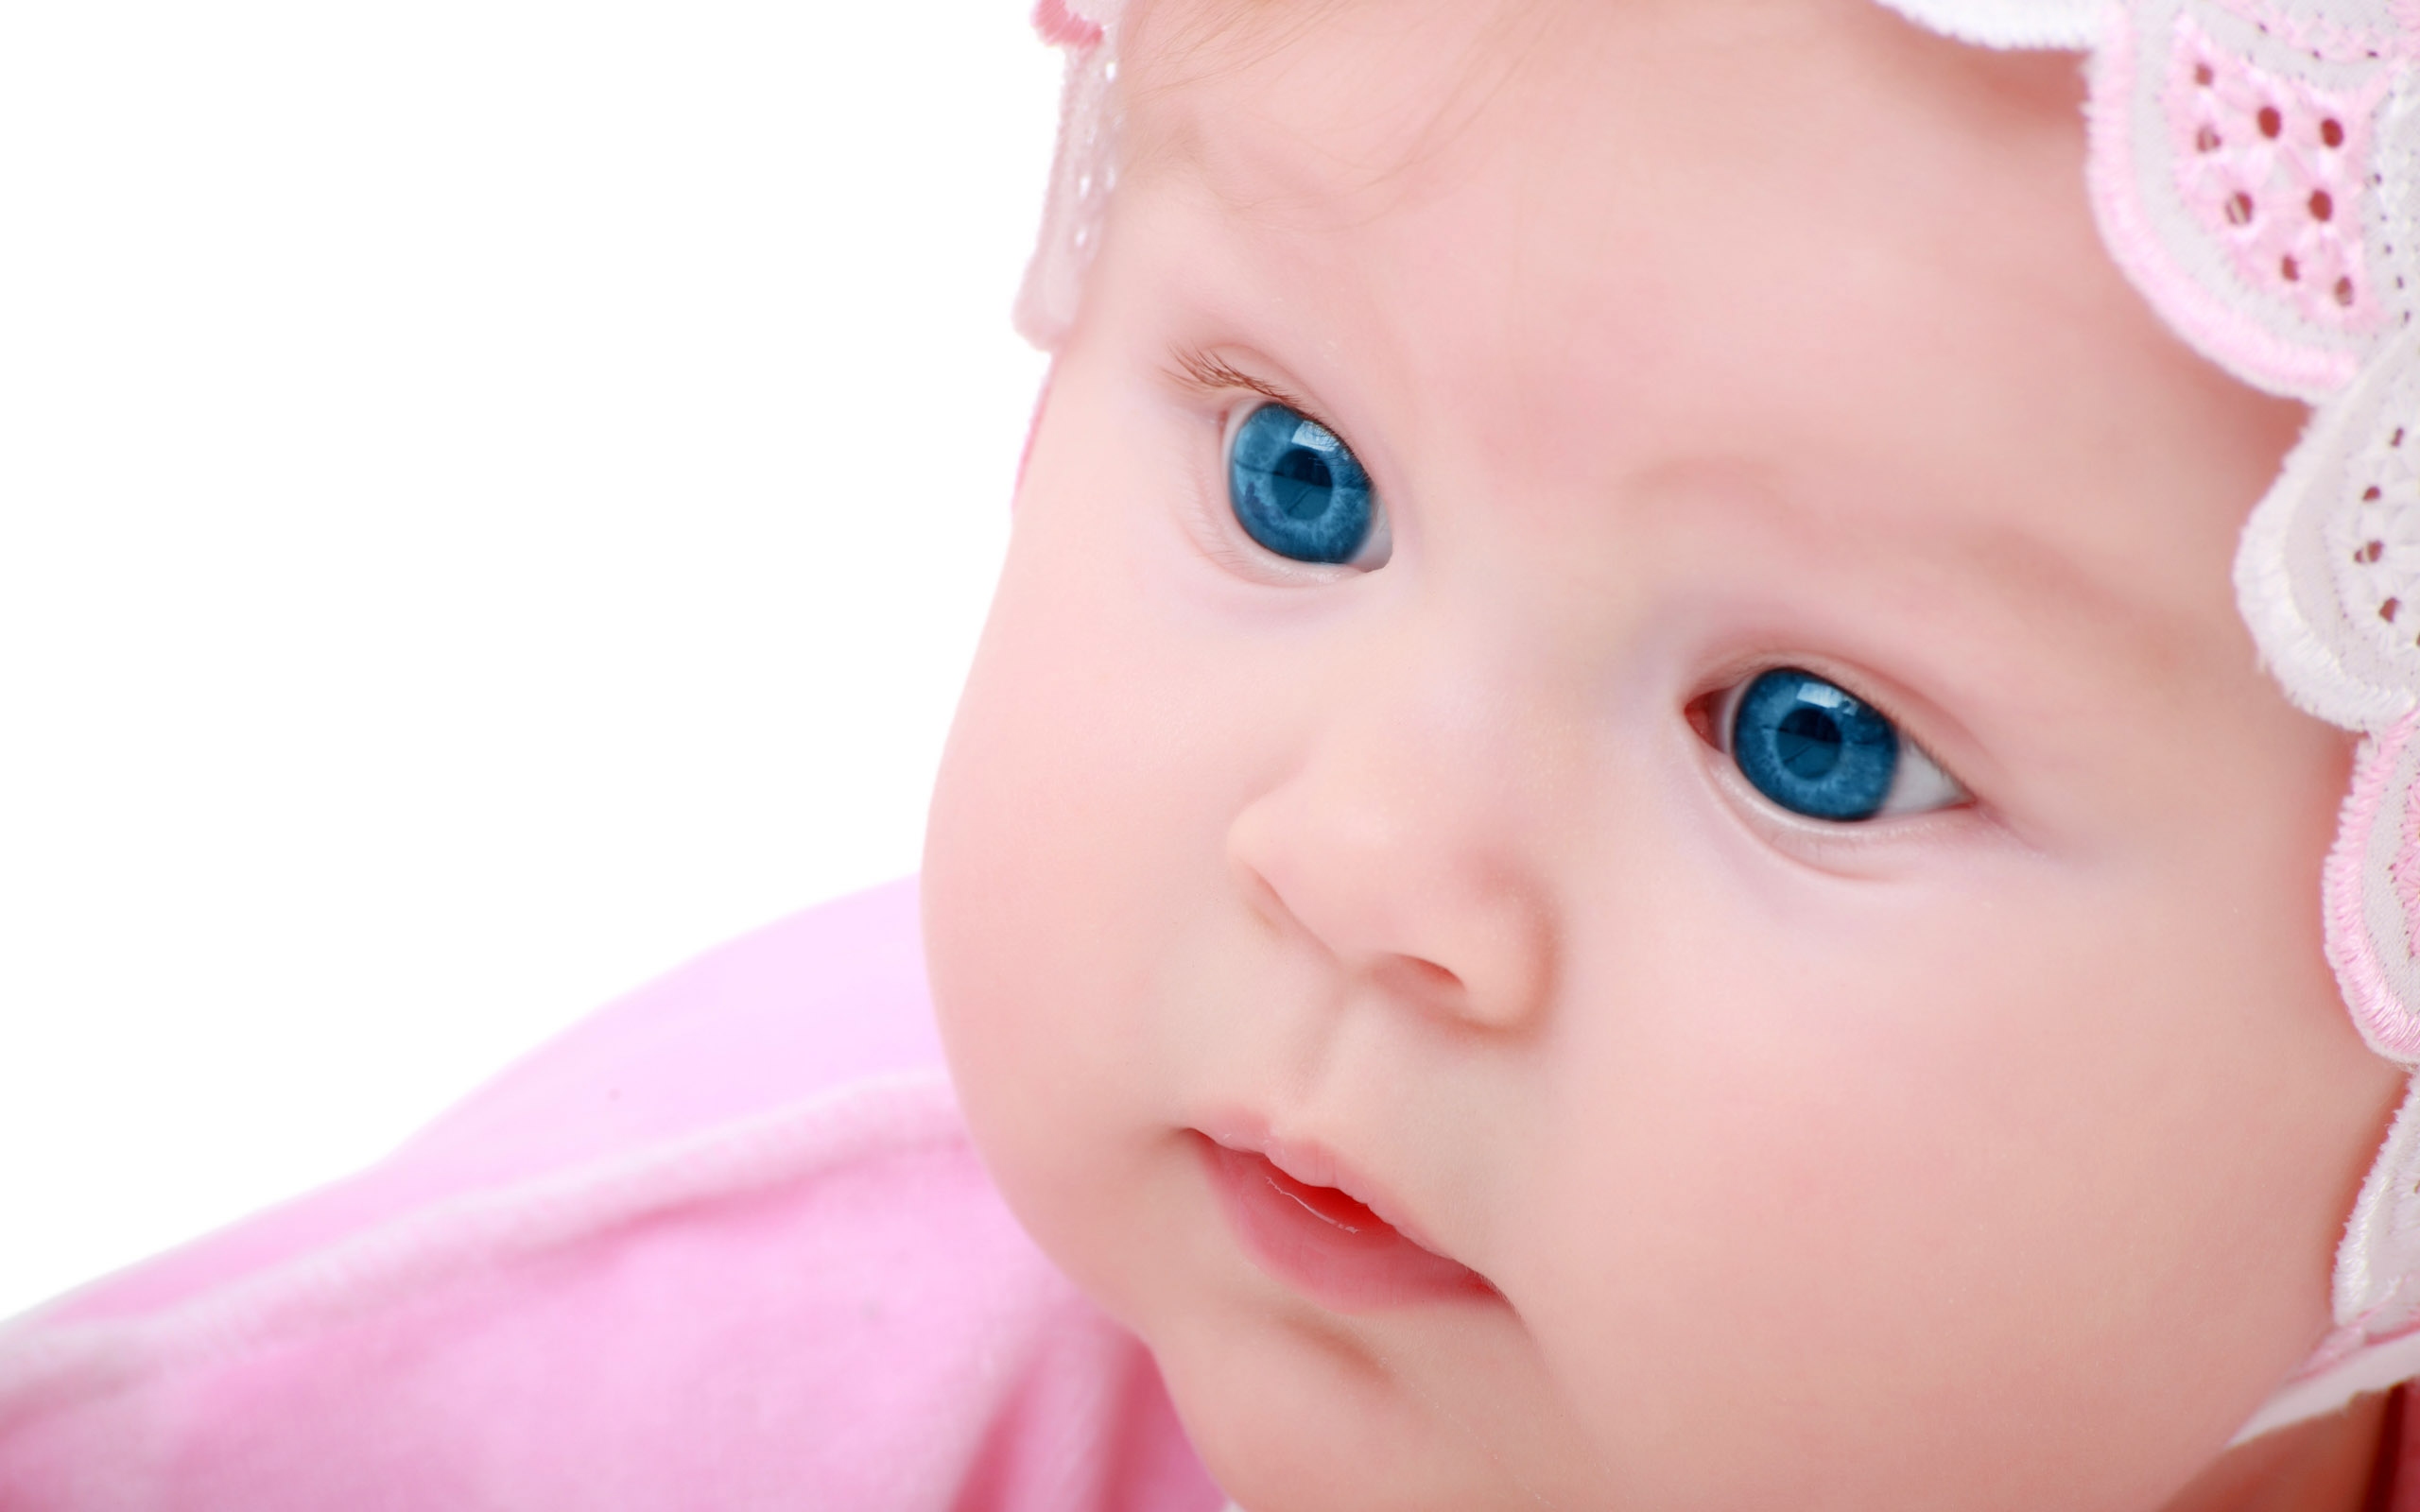 Cute Blue Eyes Baby - Blue Eyes Baby